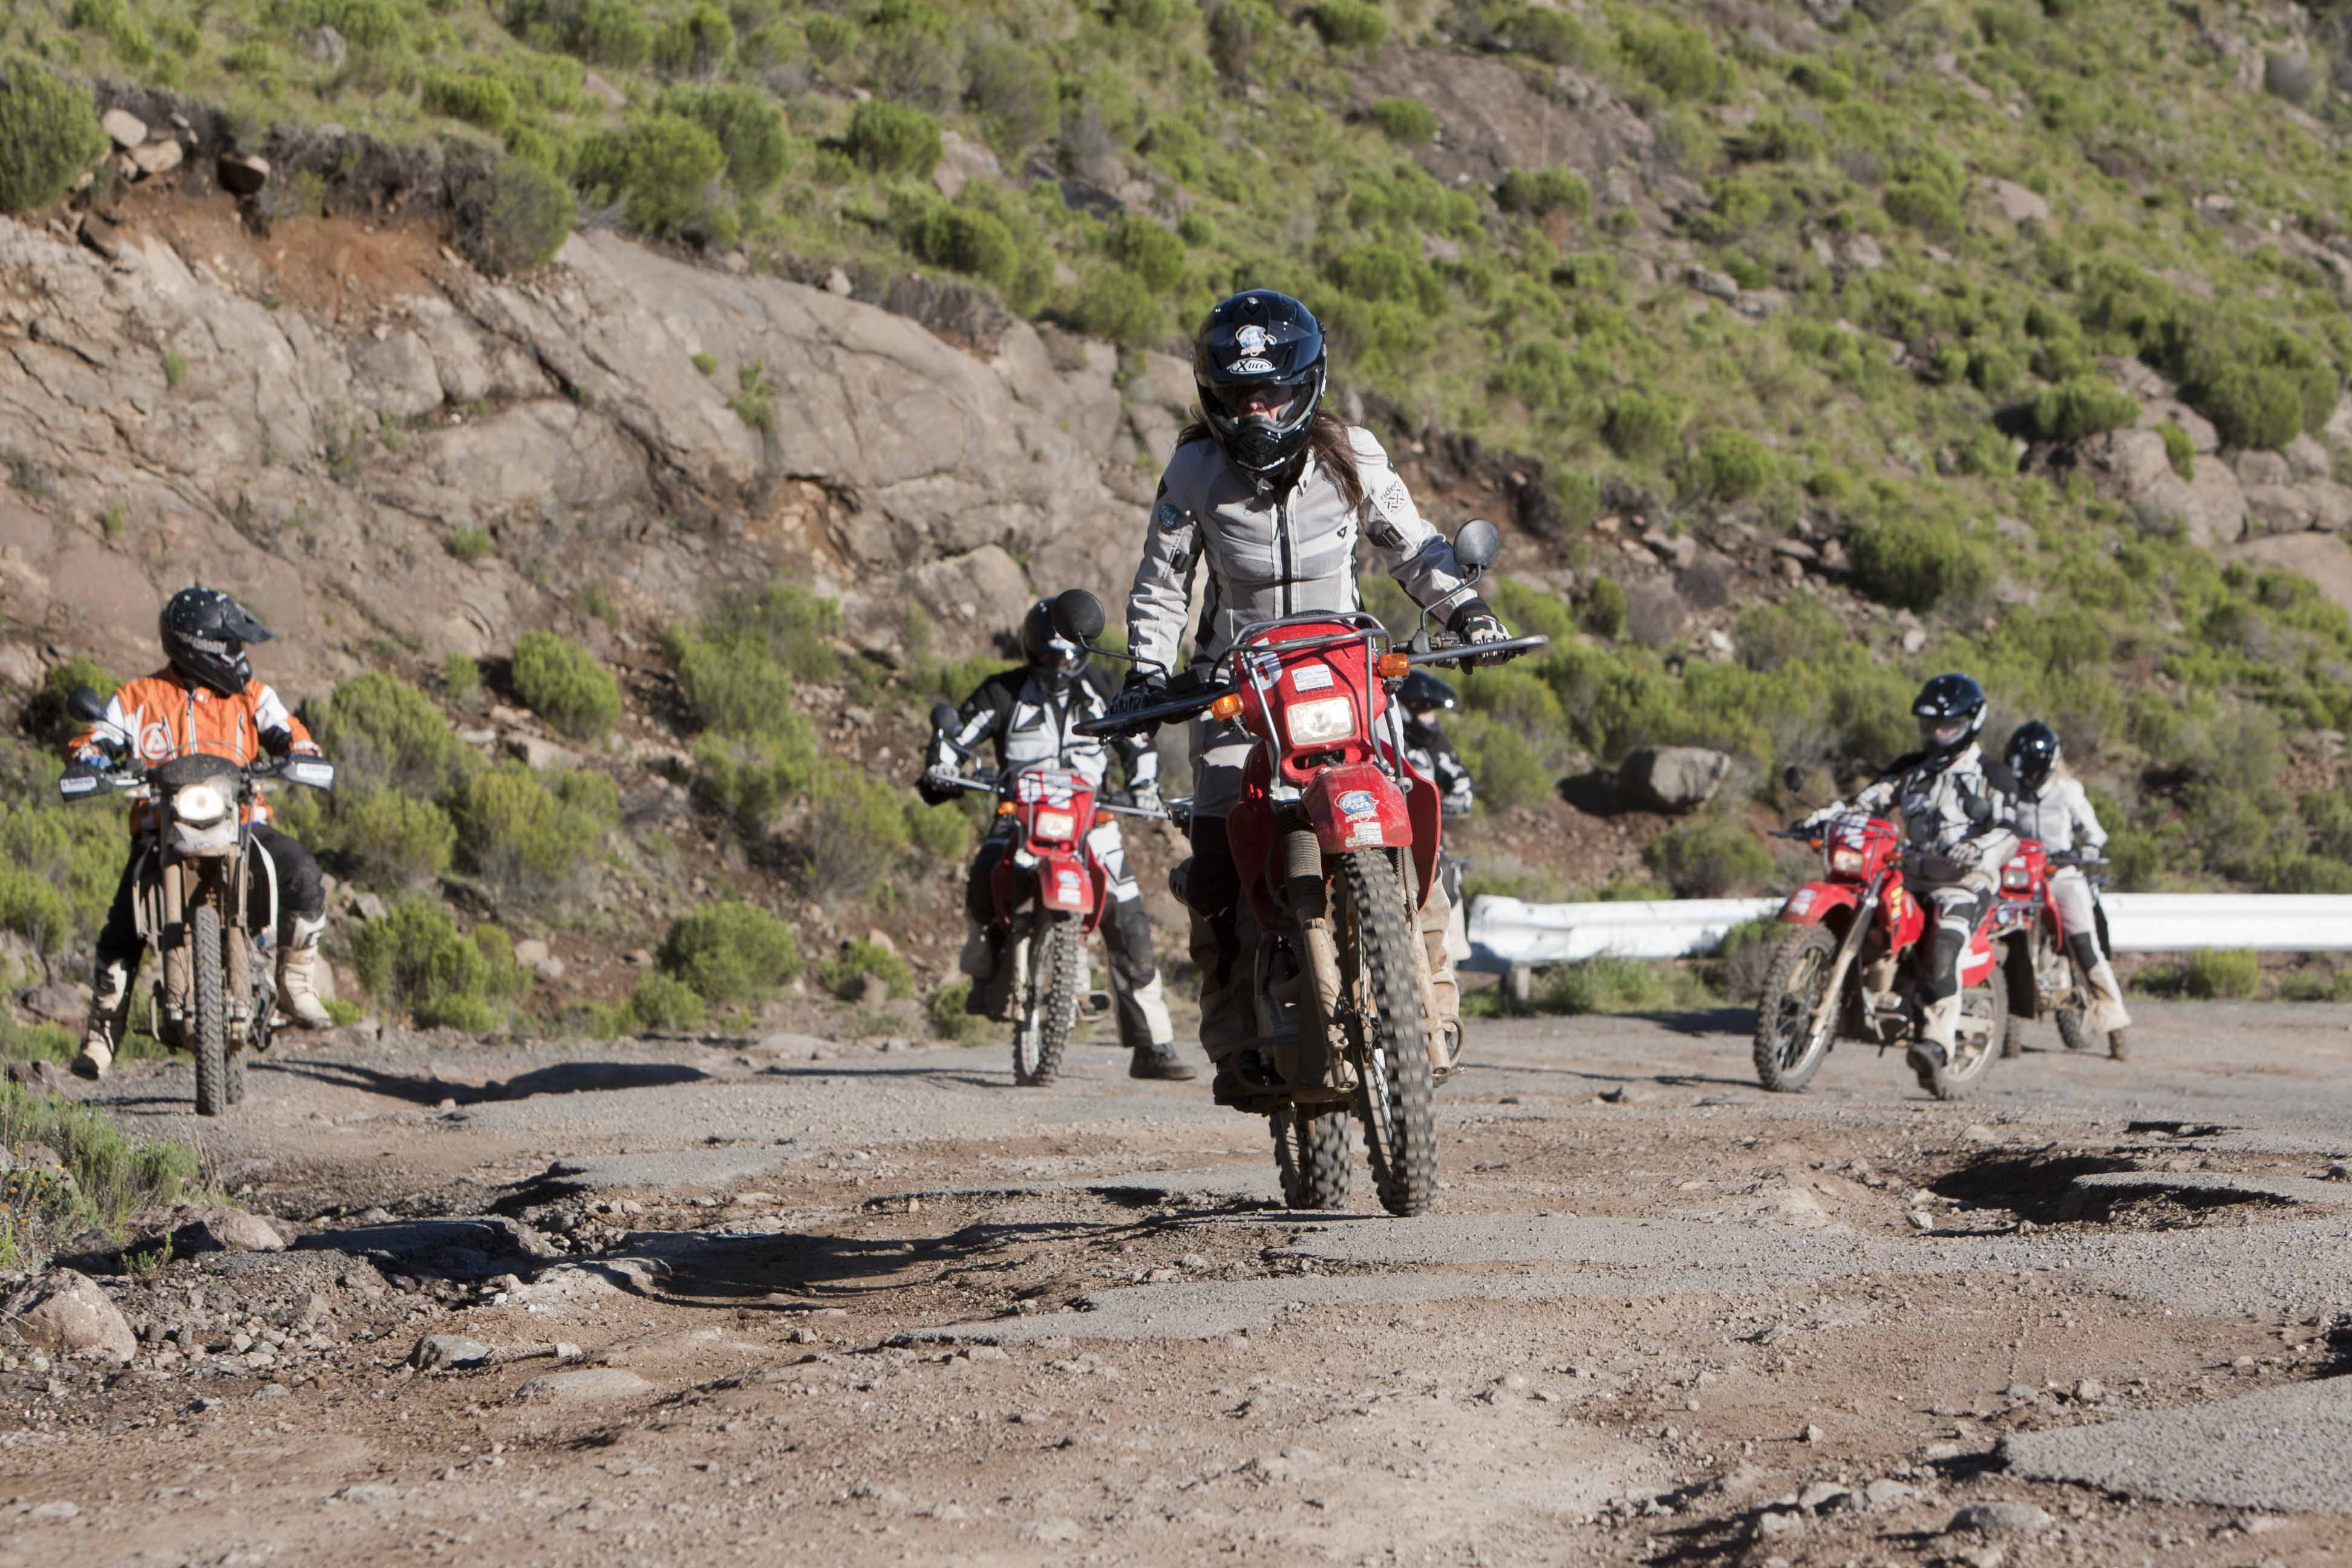 Celebs ride motorcycles to deliver medical support in Lesotho